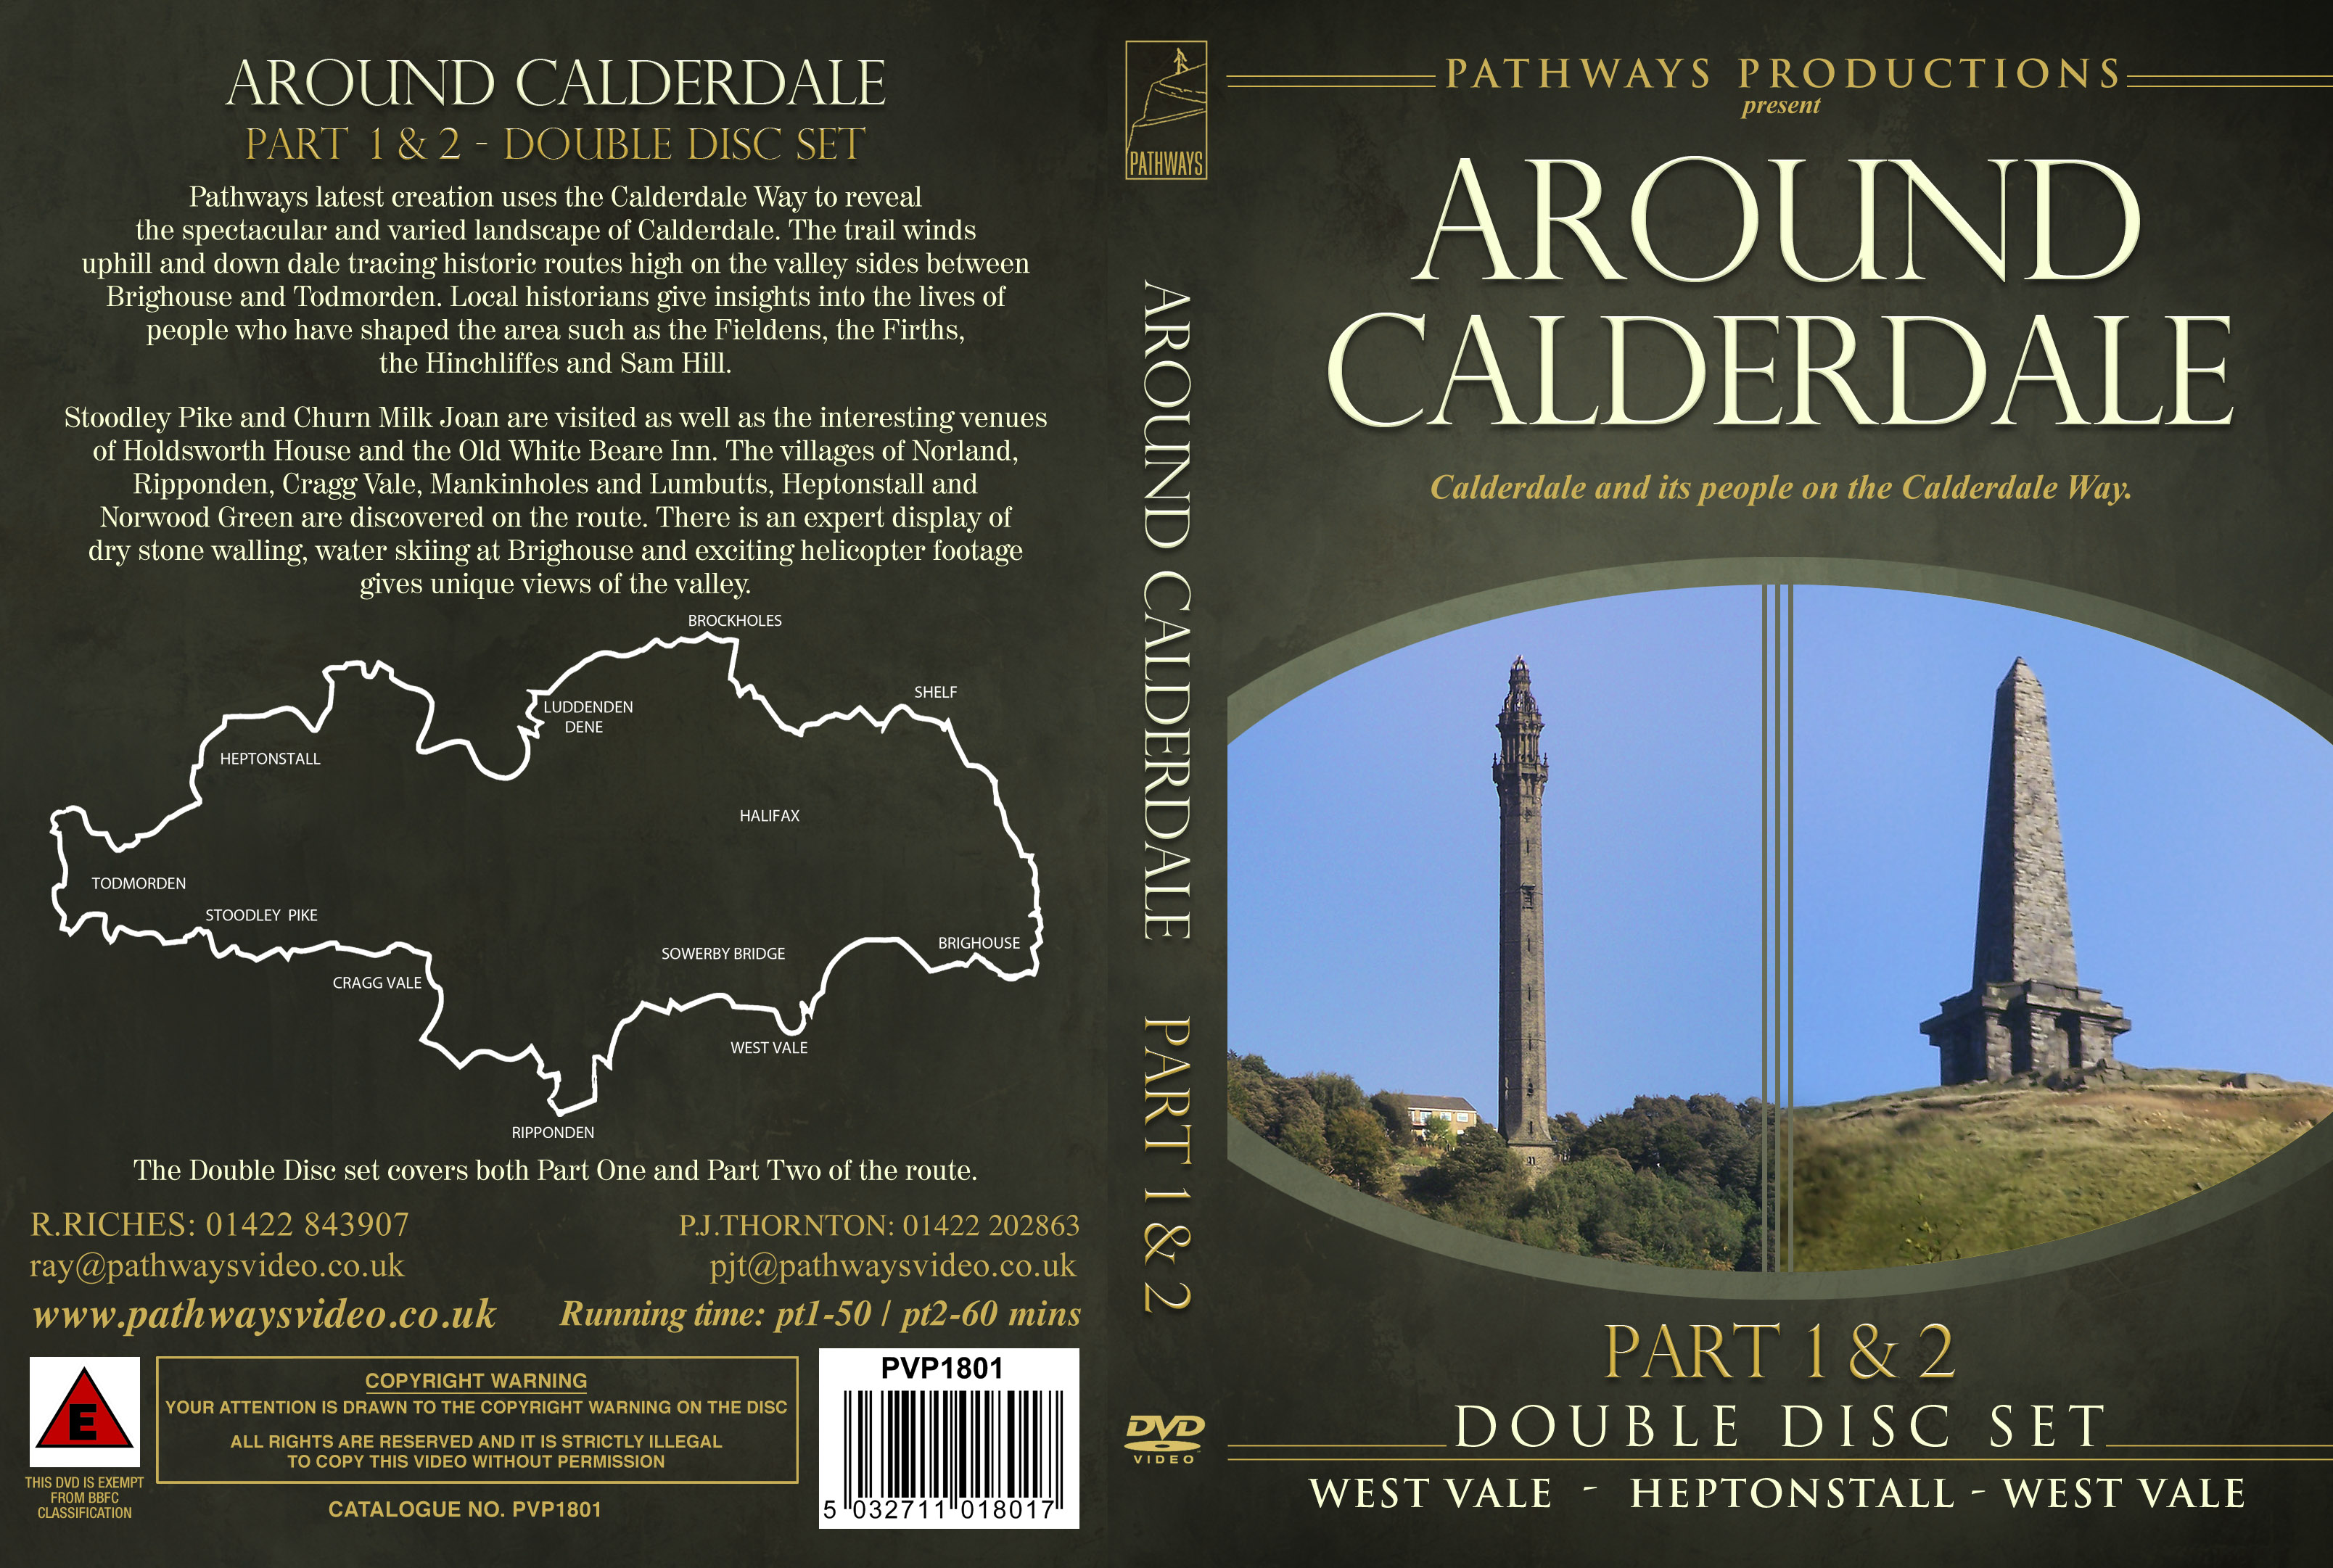 Around Calderdale by Pathways Productions